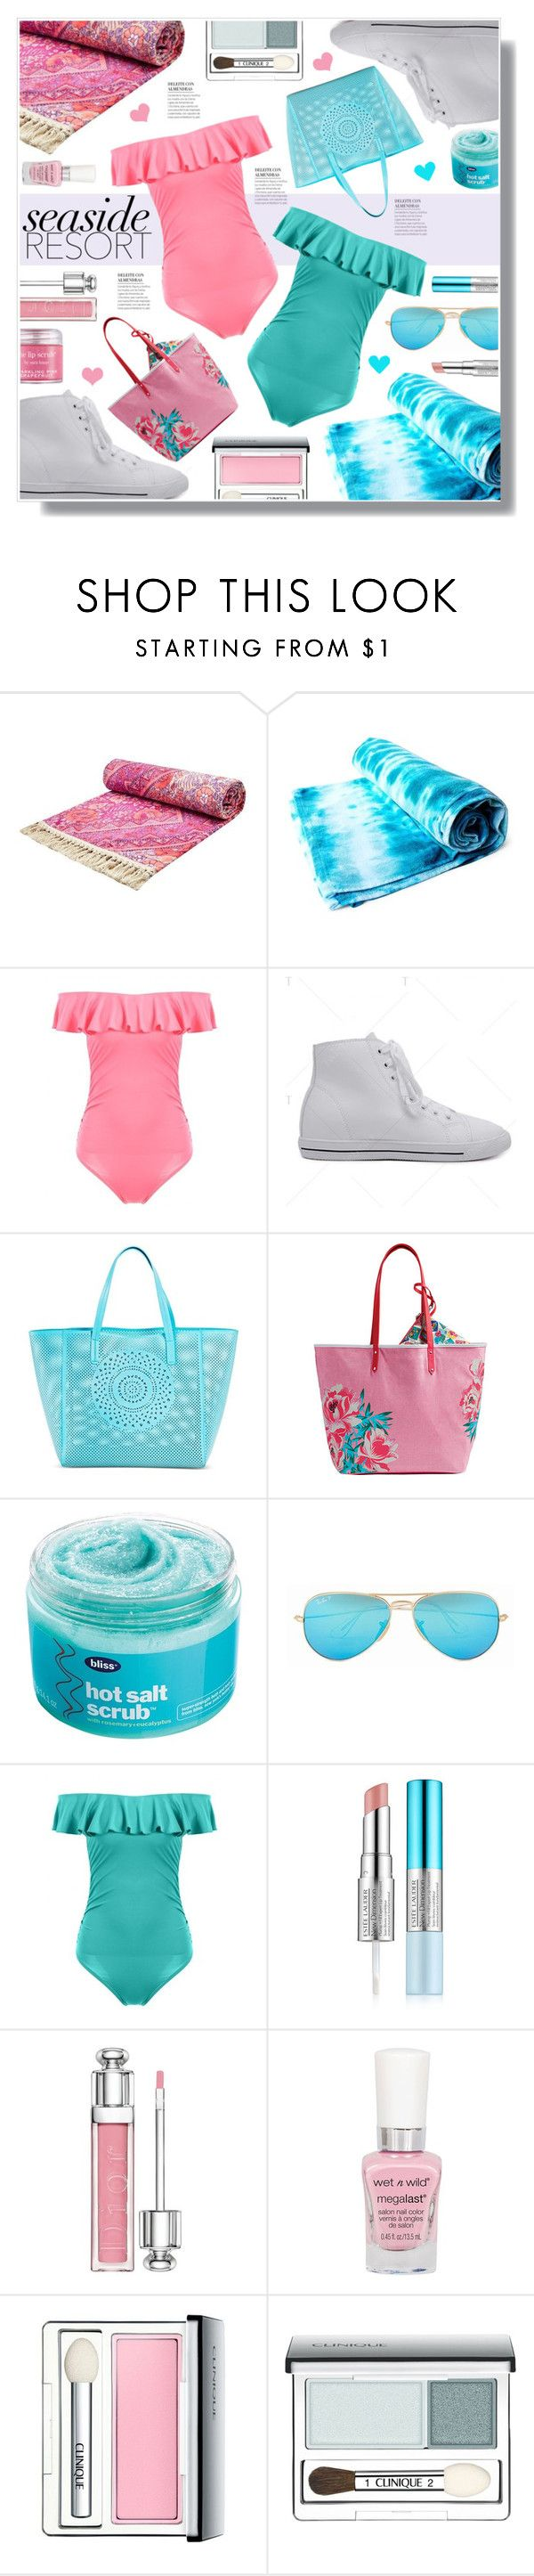 """""""Twinkledeals 75"""" by becky12 ❤ liked on Polyvore featuring Brika, Merona, Vera Bradley, Bliss, Ray-Ban, Estée Lauder, Christian Dior, Clinique, beach and swimsuit"""